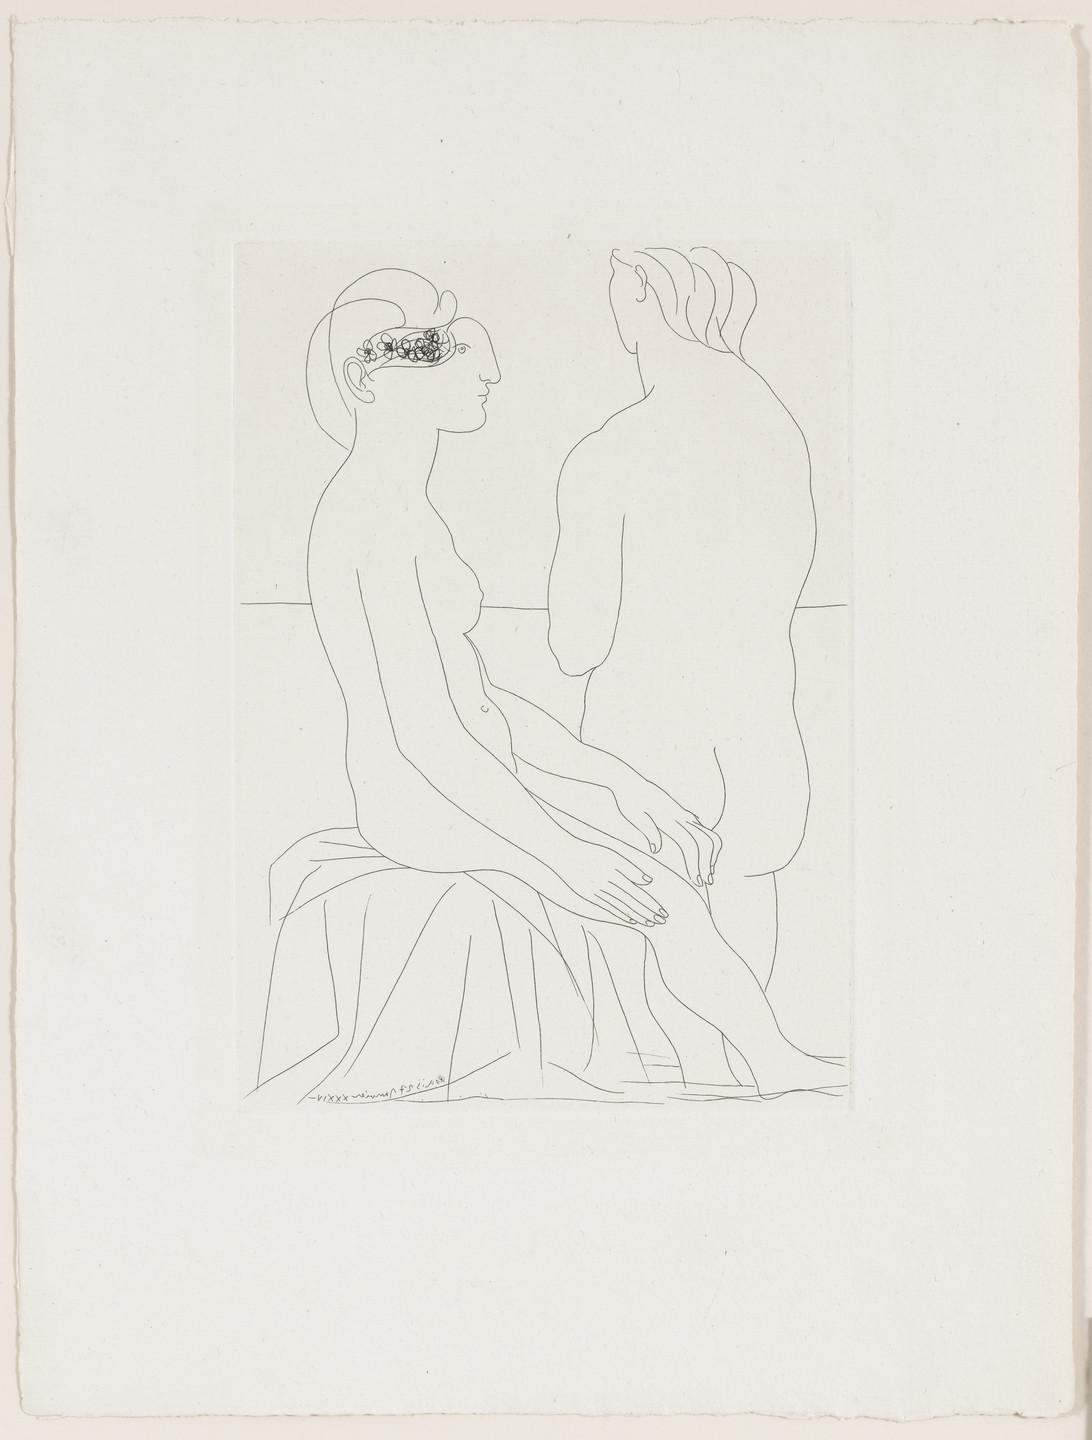 Pablo Picasso. Women at the Bath (Femmes au bain) from the Vollard Suite (Suite Vollard). 1934, published 1939